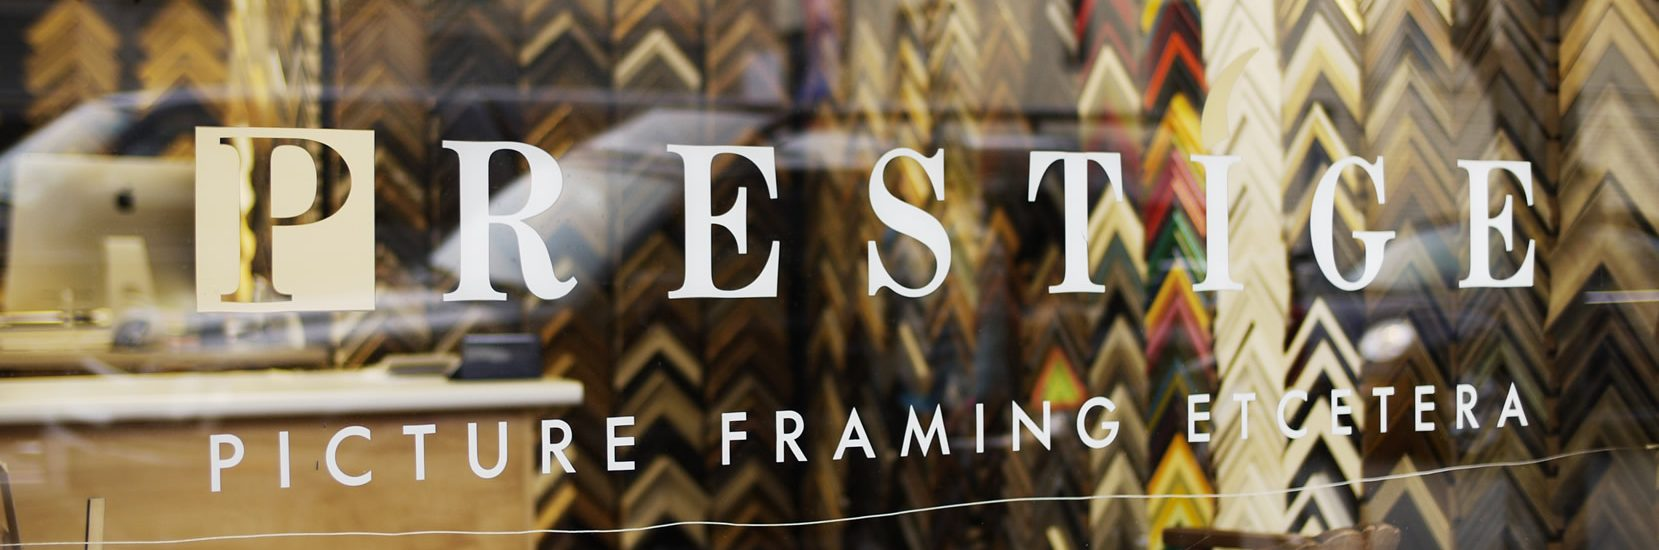 Prestige Picture Framing Etcetera, Oak Bay Avenue, Victoria, BC